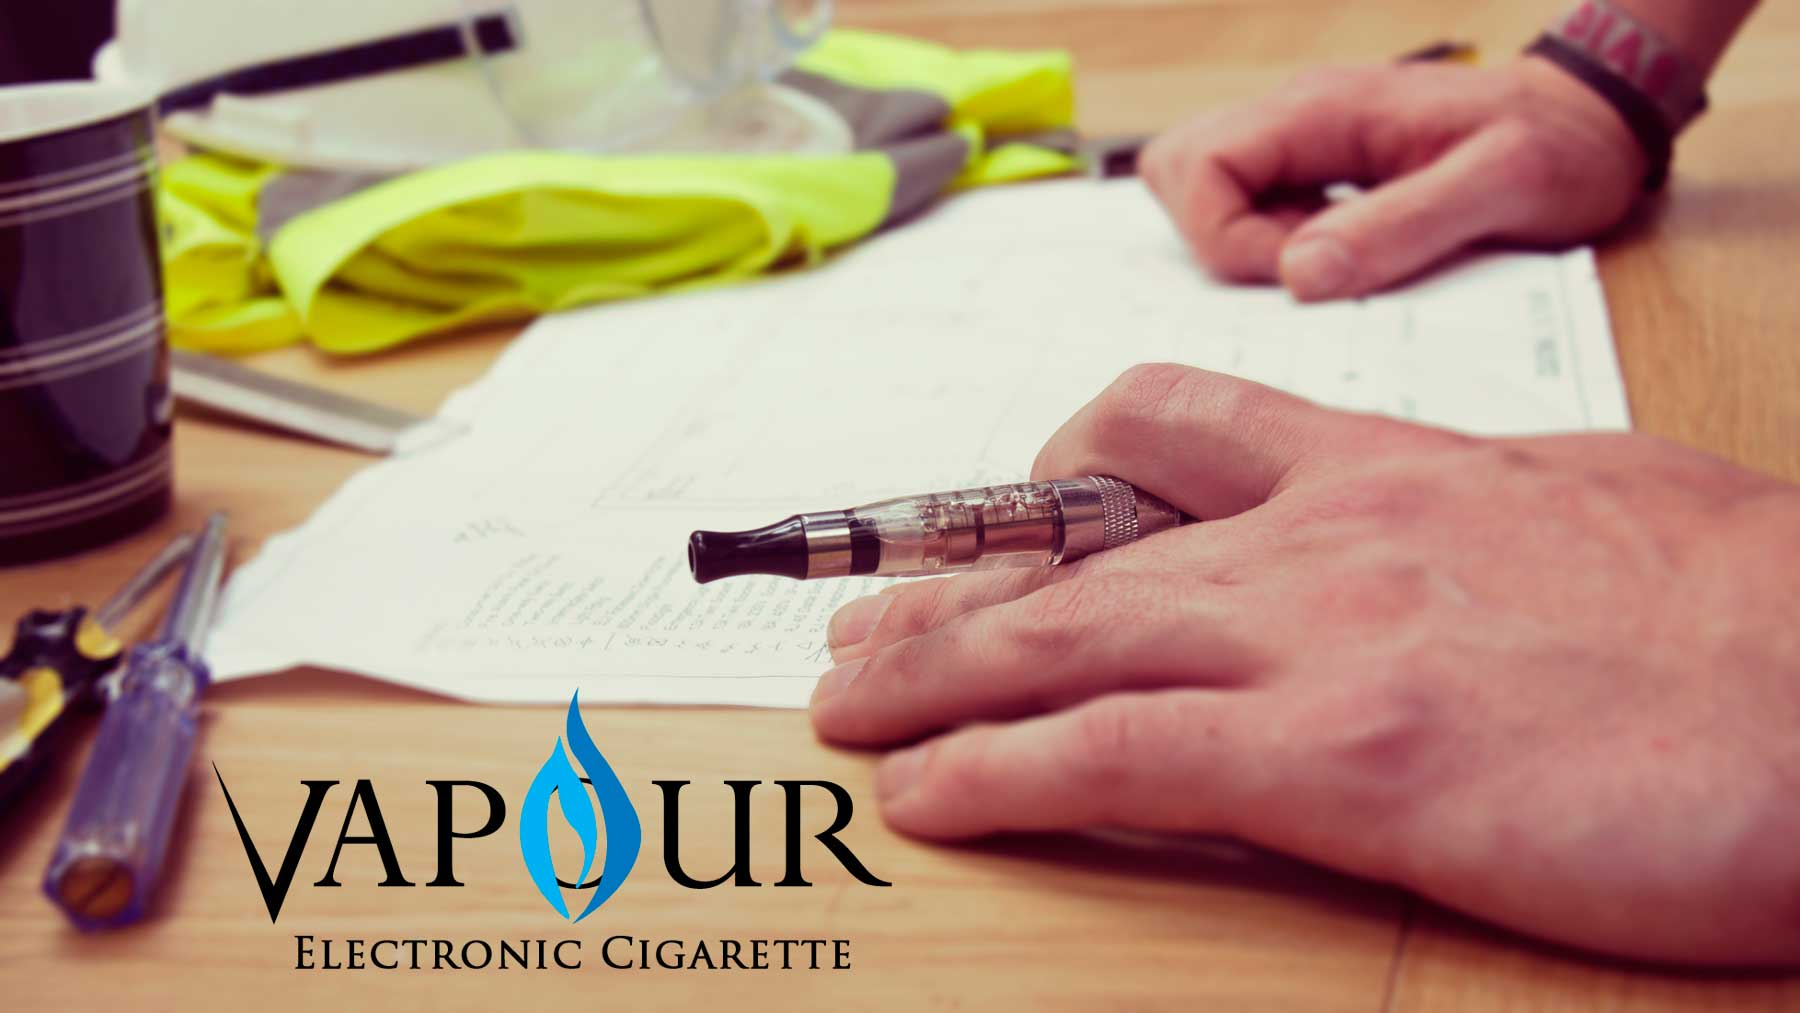 16-Vapour-Electronic-Cigarette-Hand-Builder-Work-Commercial-Philip-Murray-Photography